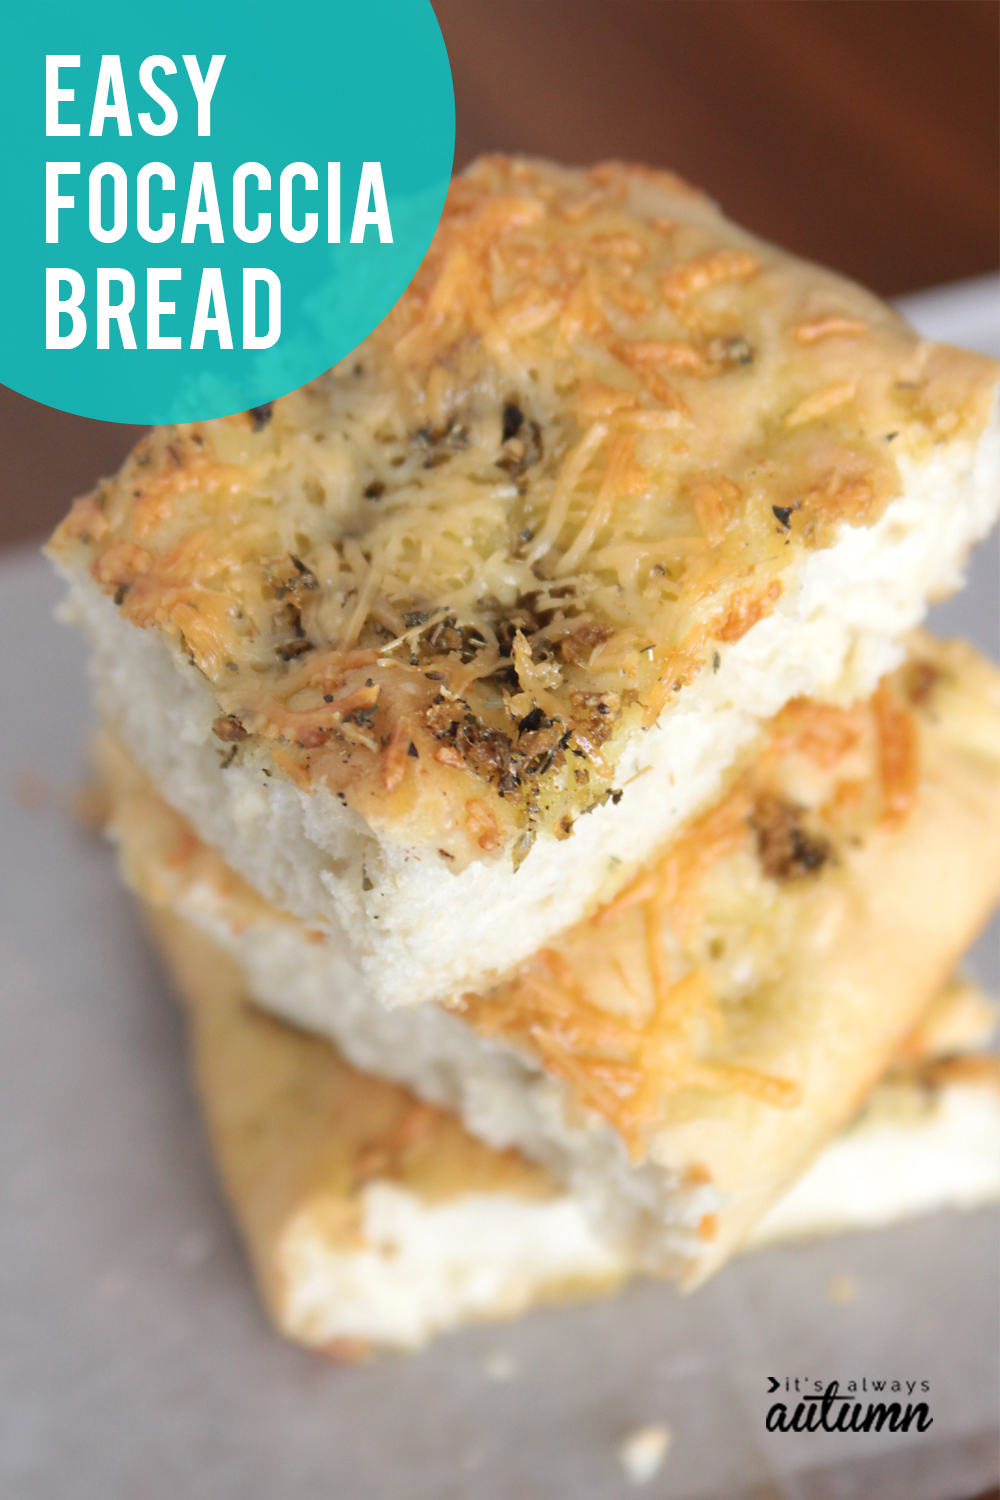 This is the easiest focaccia recipe ever! Start with frozen bread dough for amazing focaccia bread in no time.